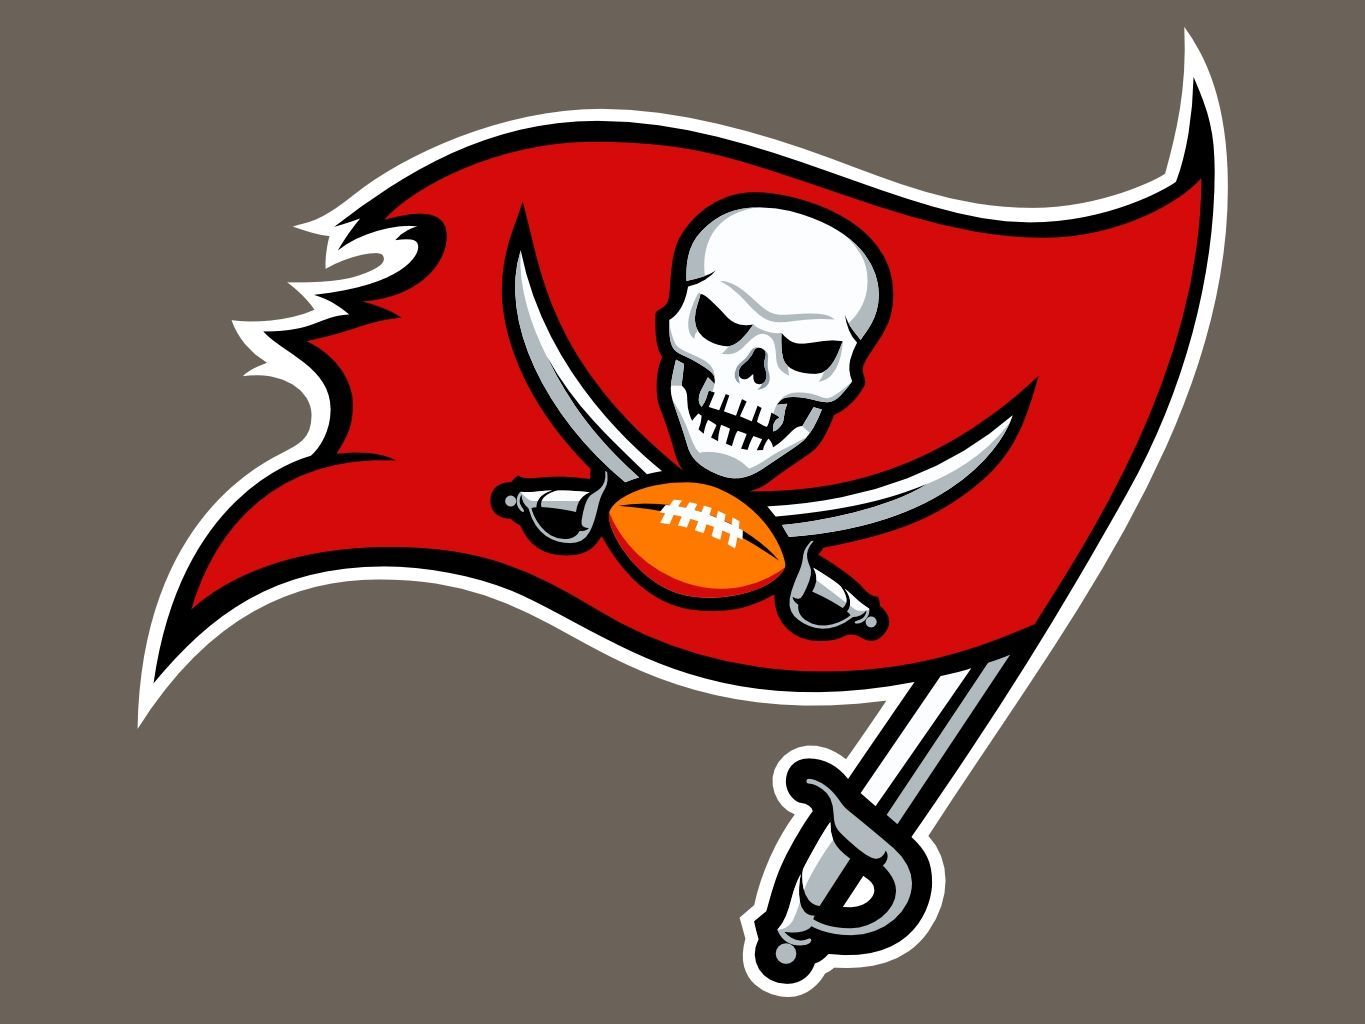 Pin by Cody Robertson on Tampa Bay Buccaneers in 2020